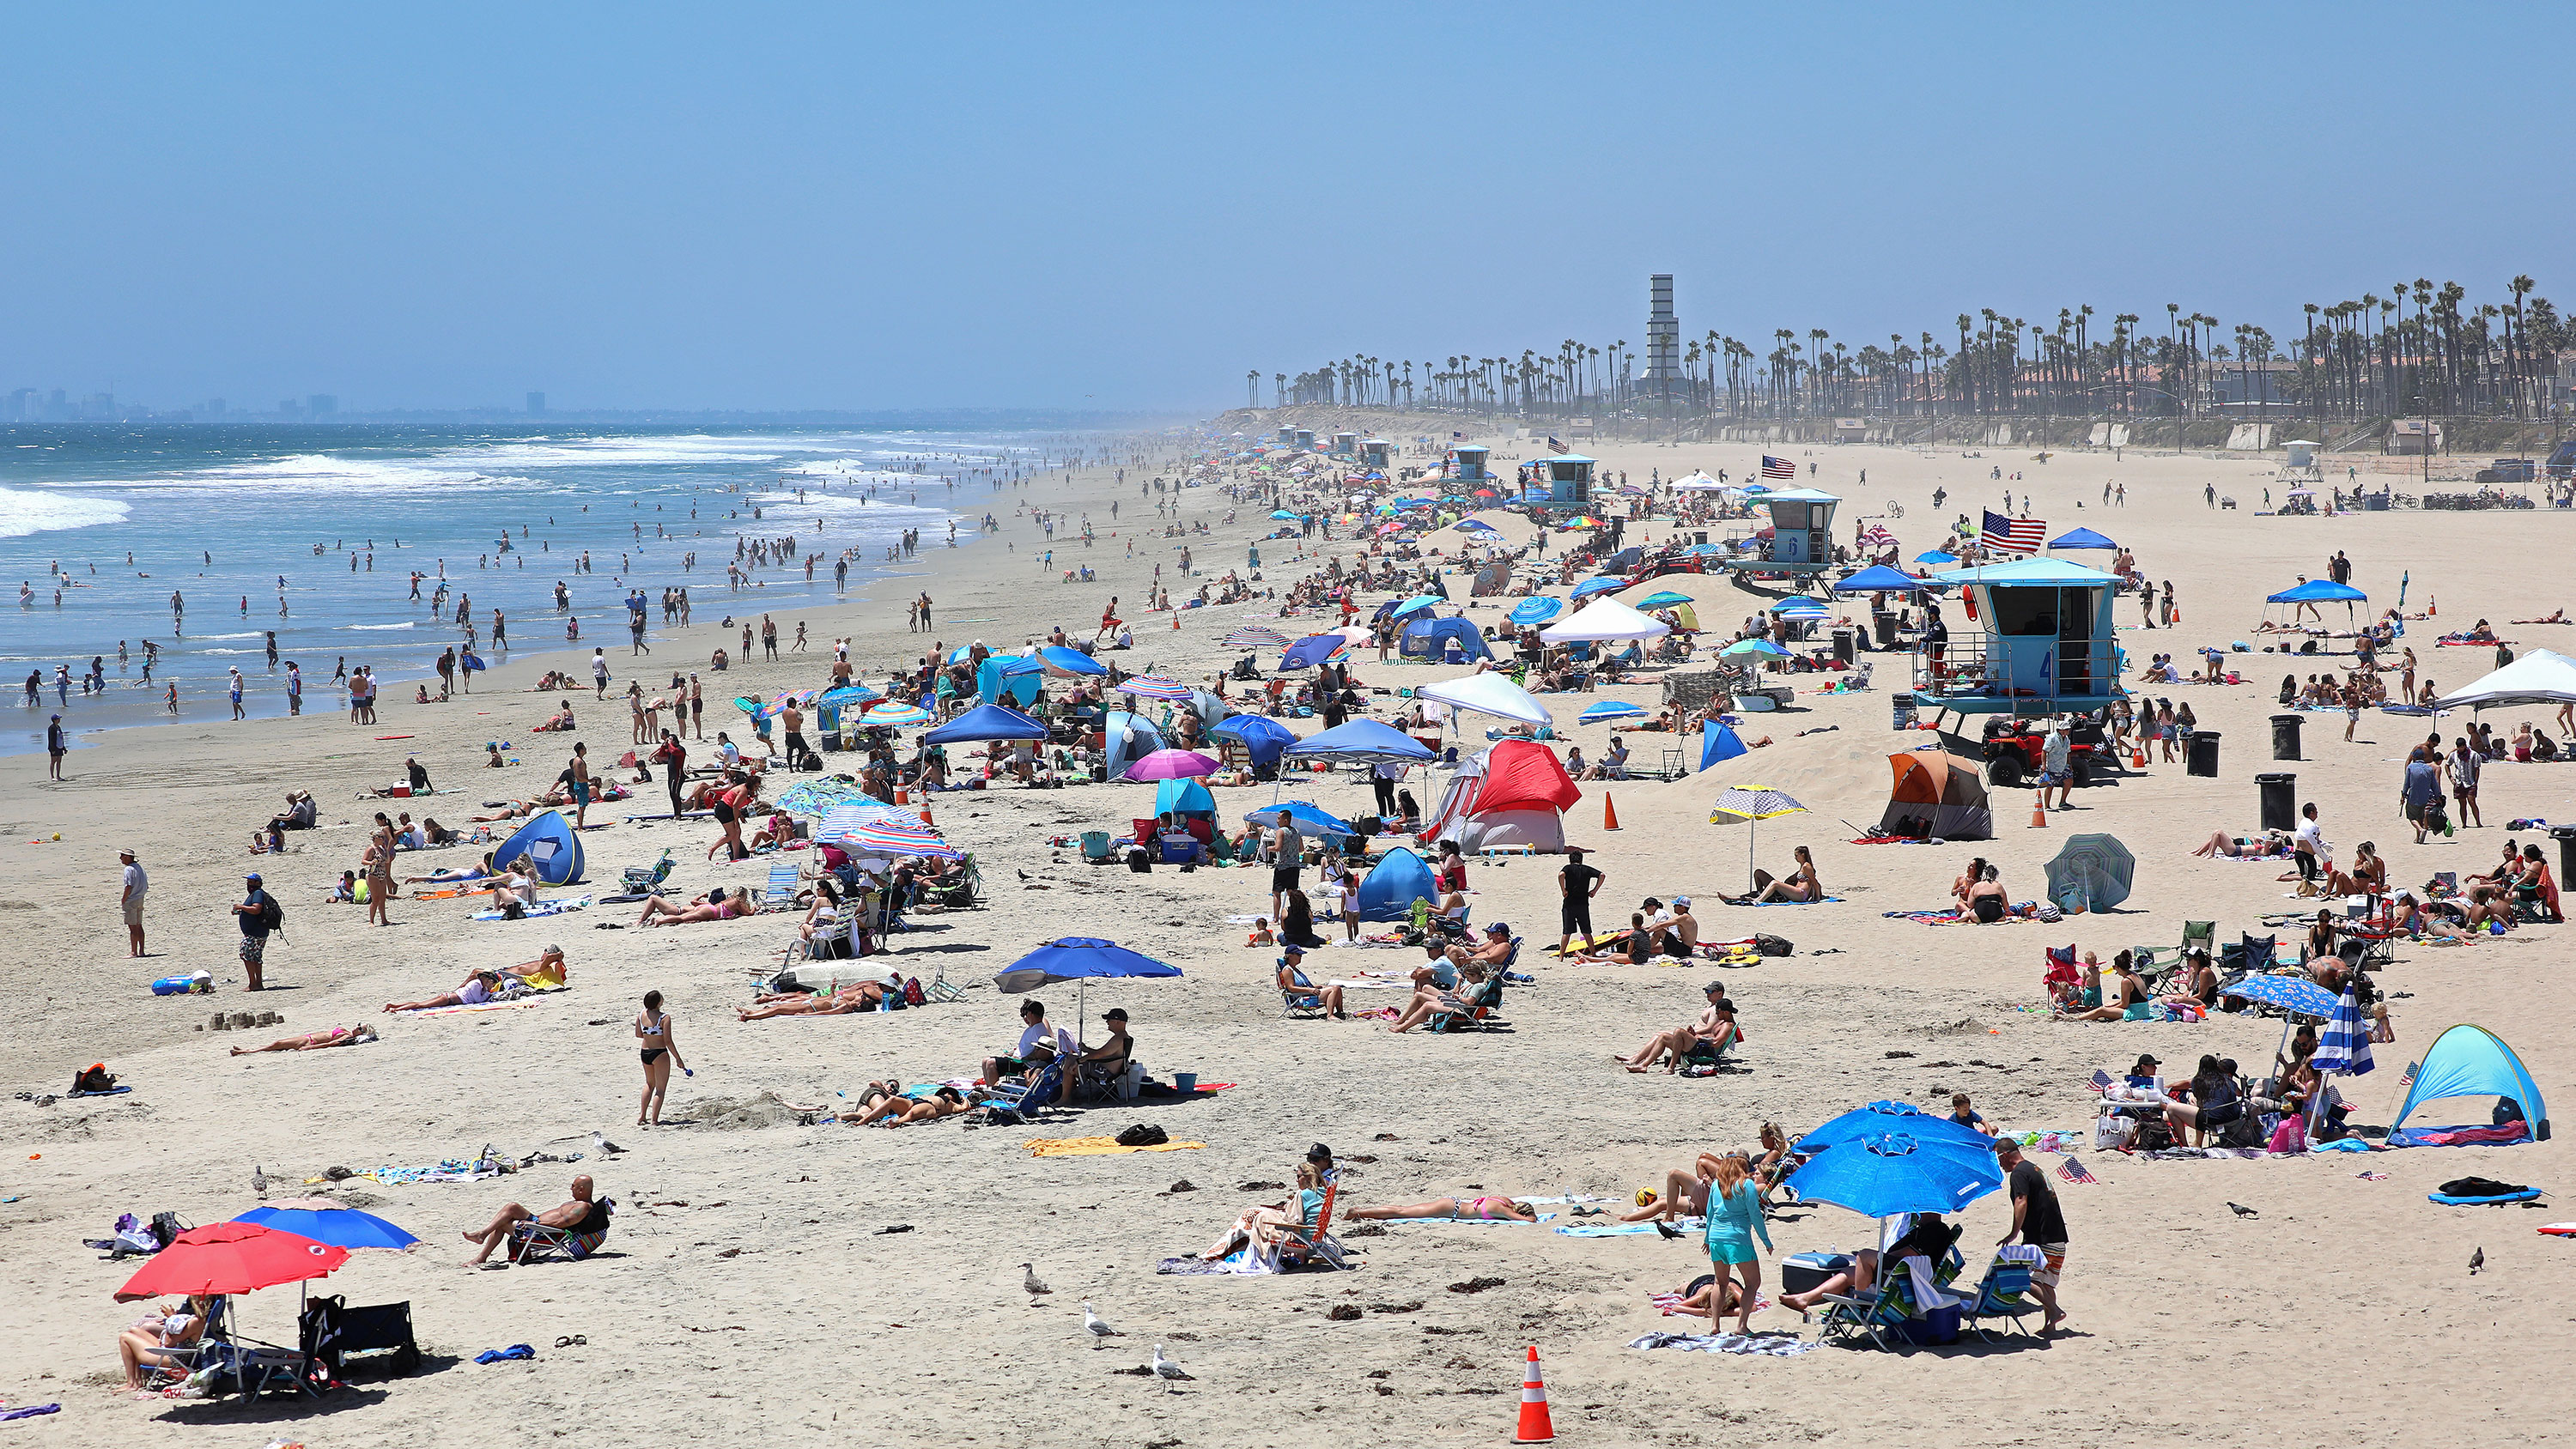 People gather at the beach on July 3 in Huntington Beach, California.